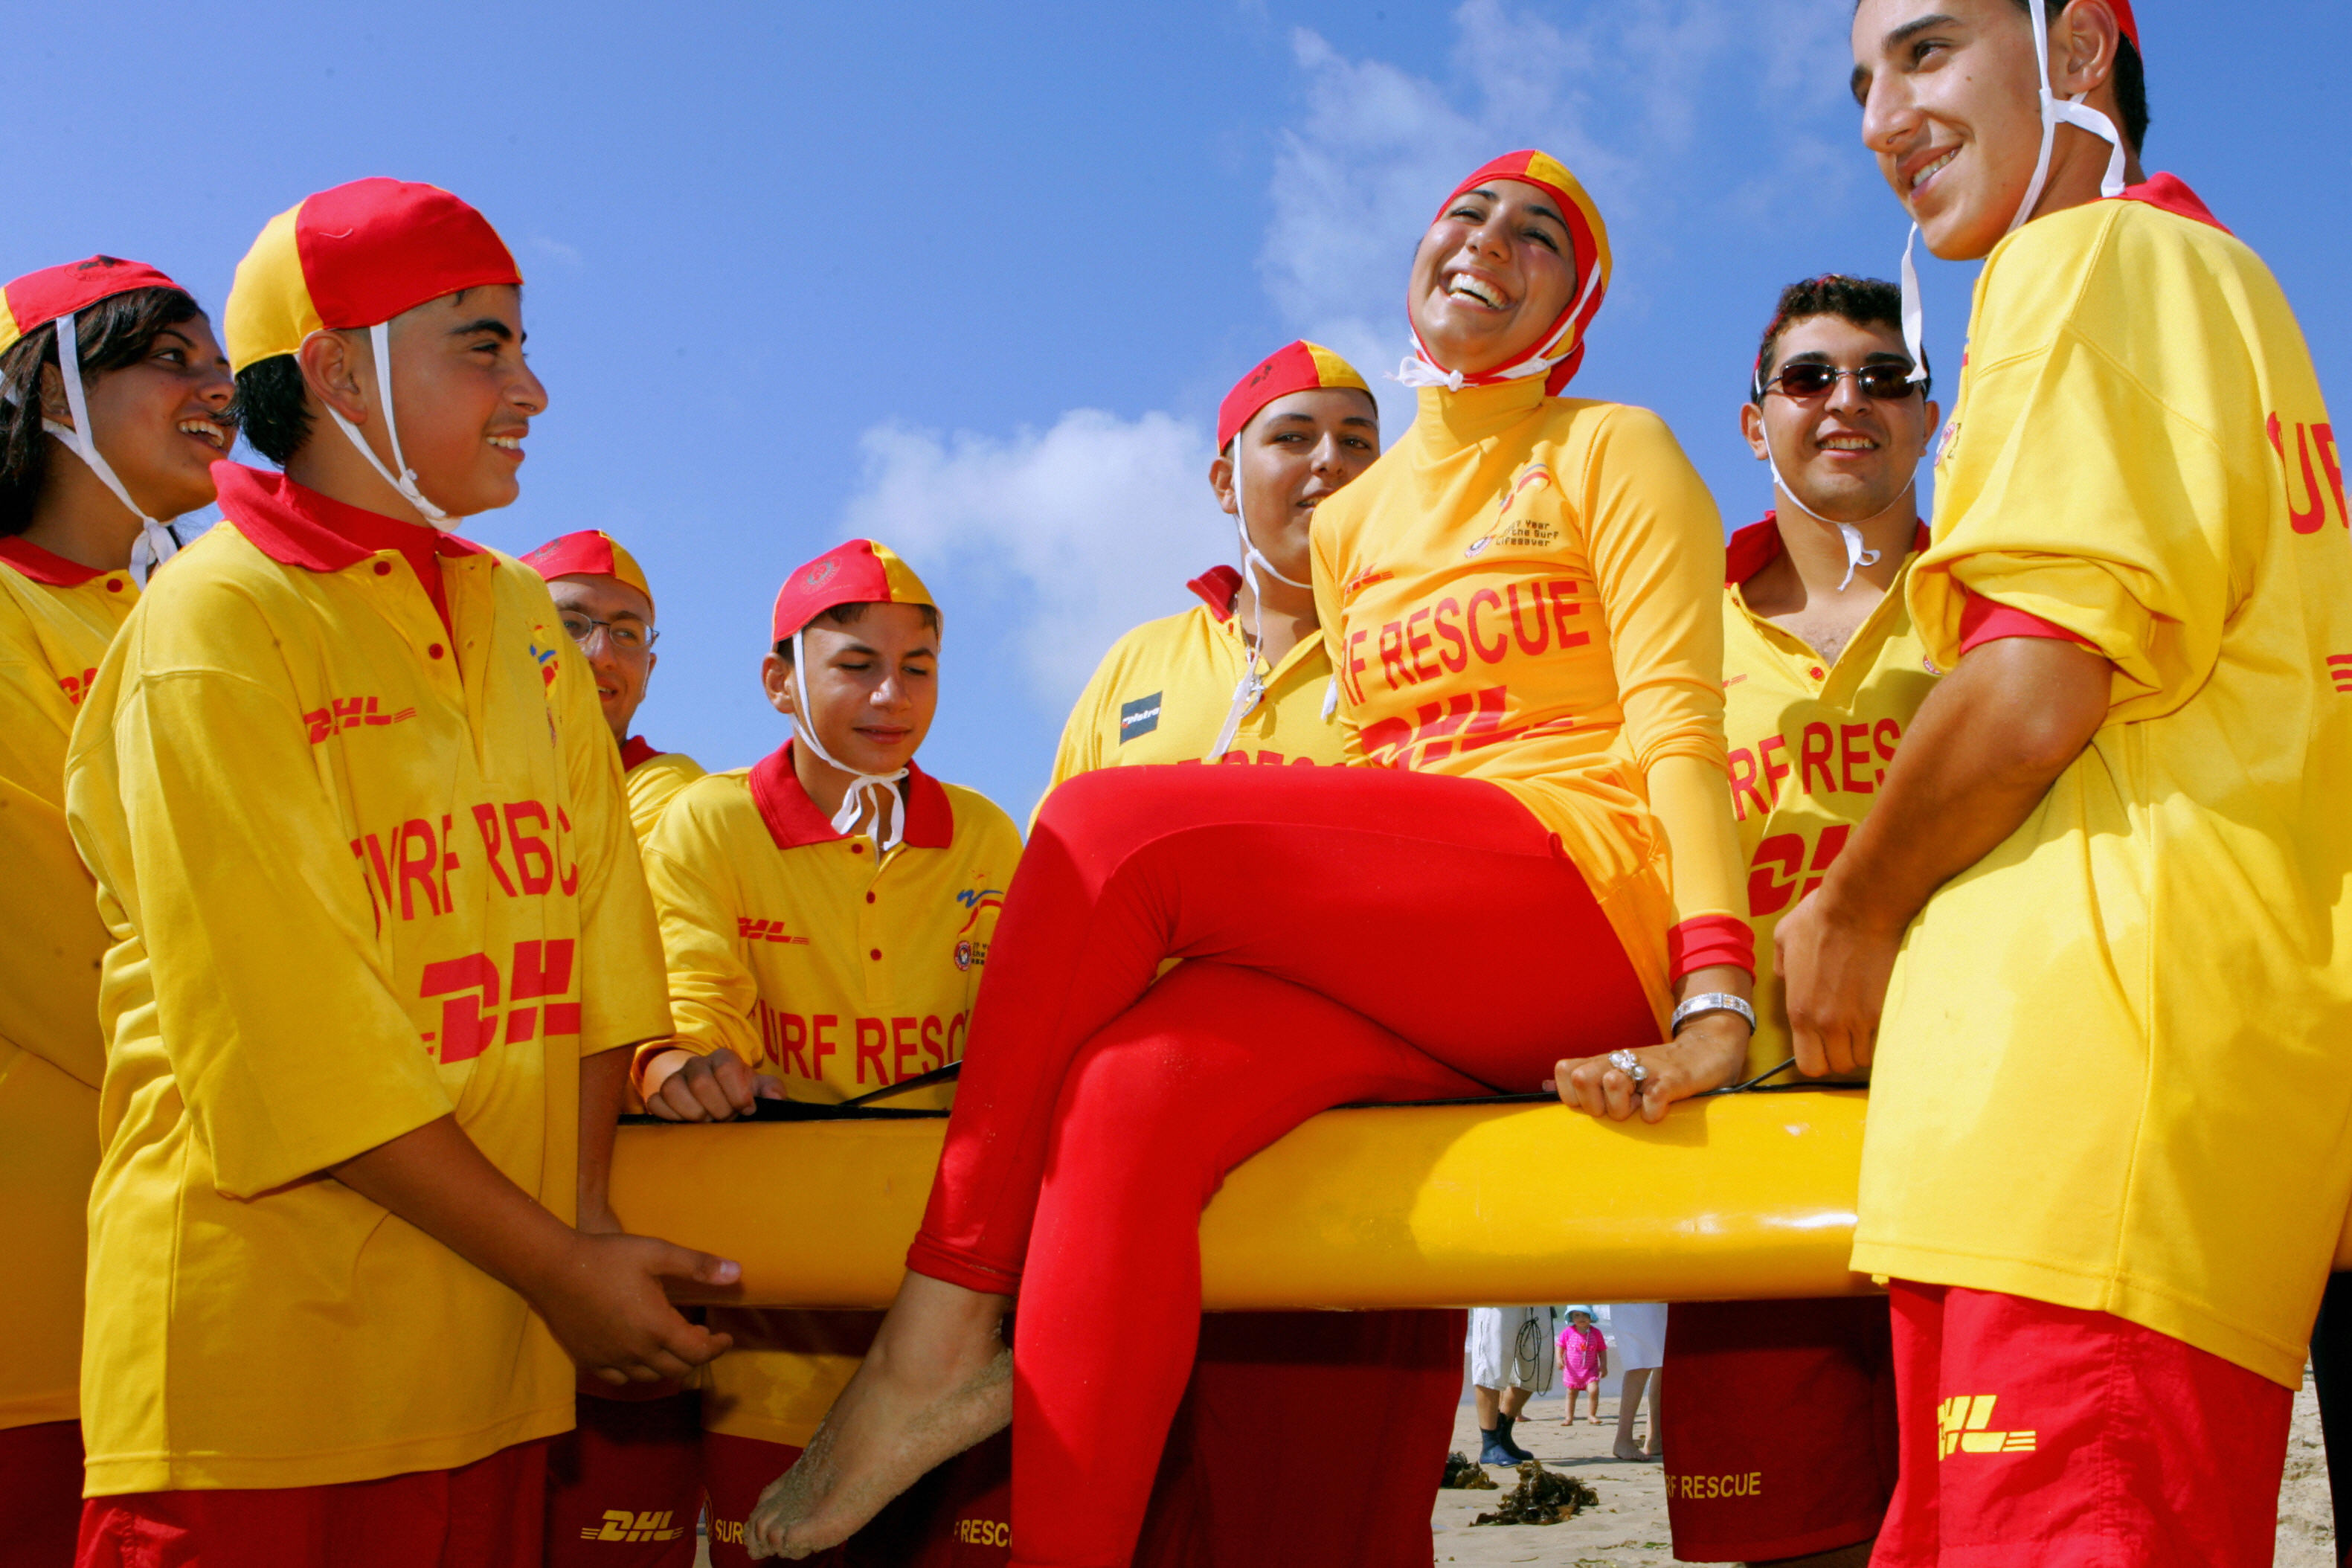 burkini lifeguard